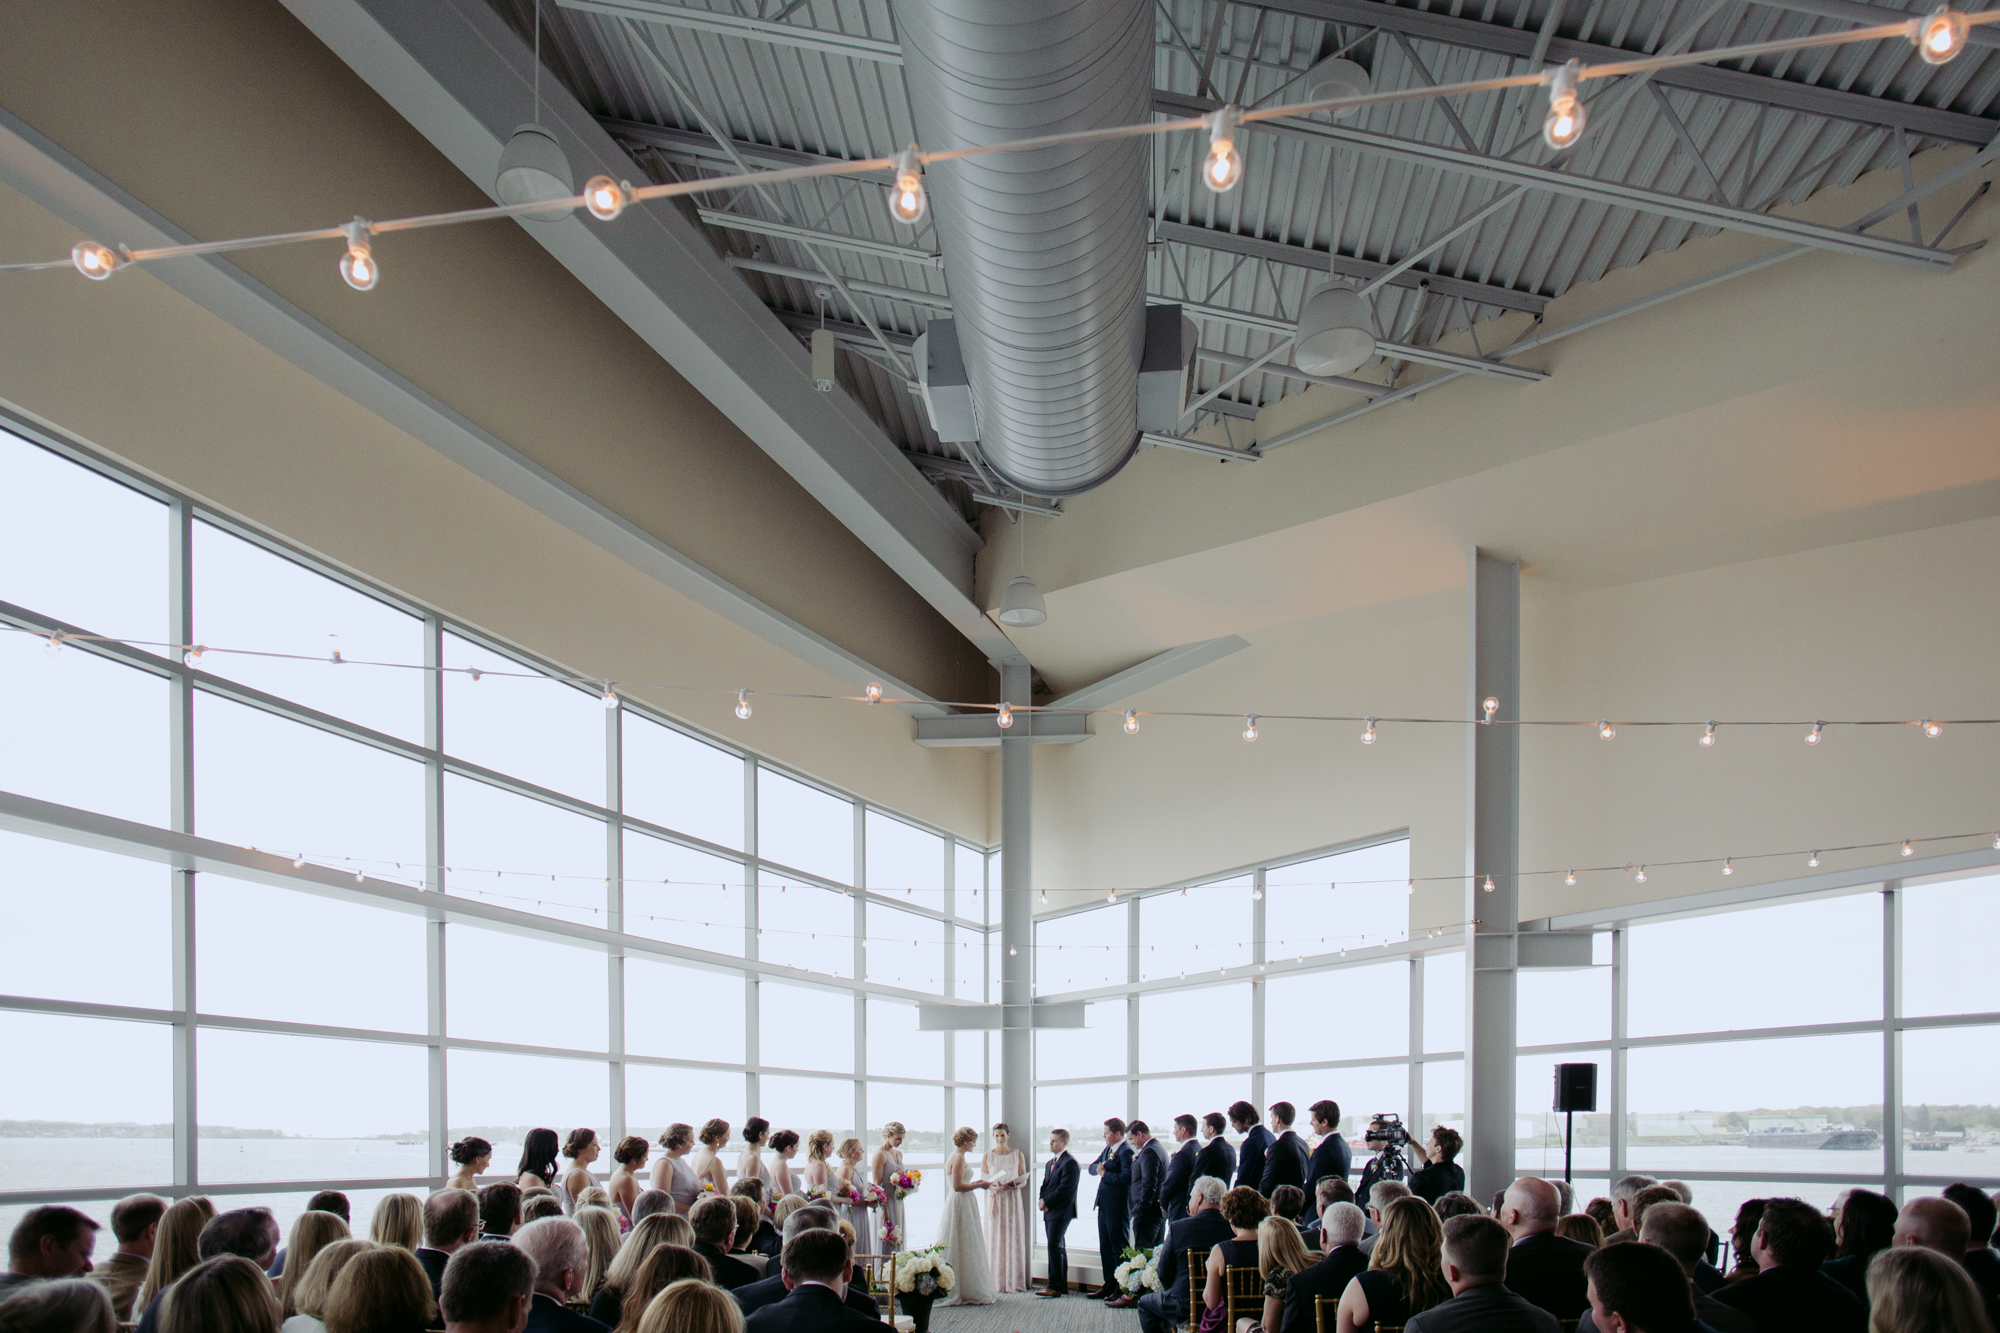 Kara_Jamie_Ocean_gateway_wedding_portland_maine_011.jpg